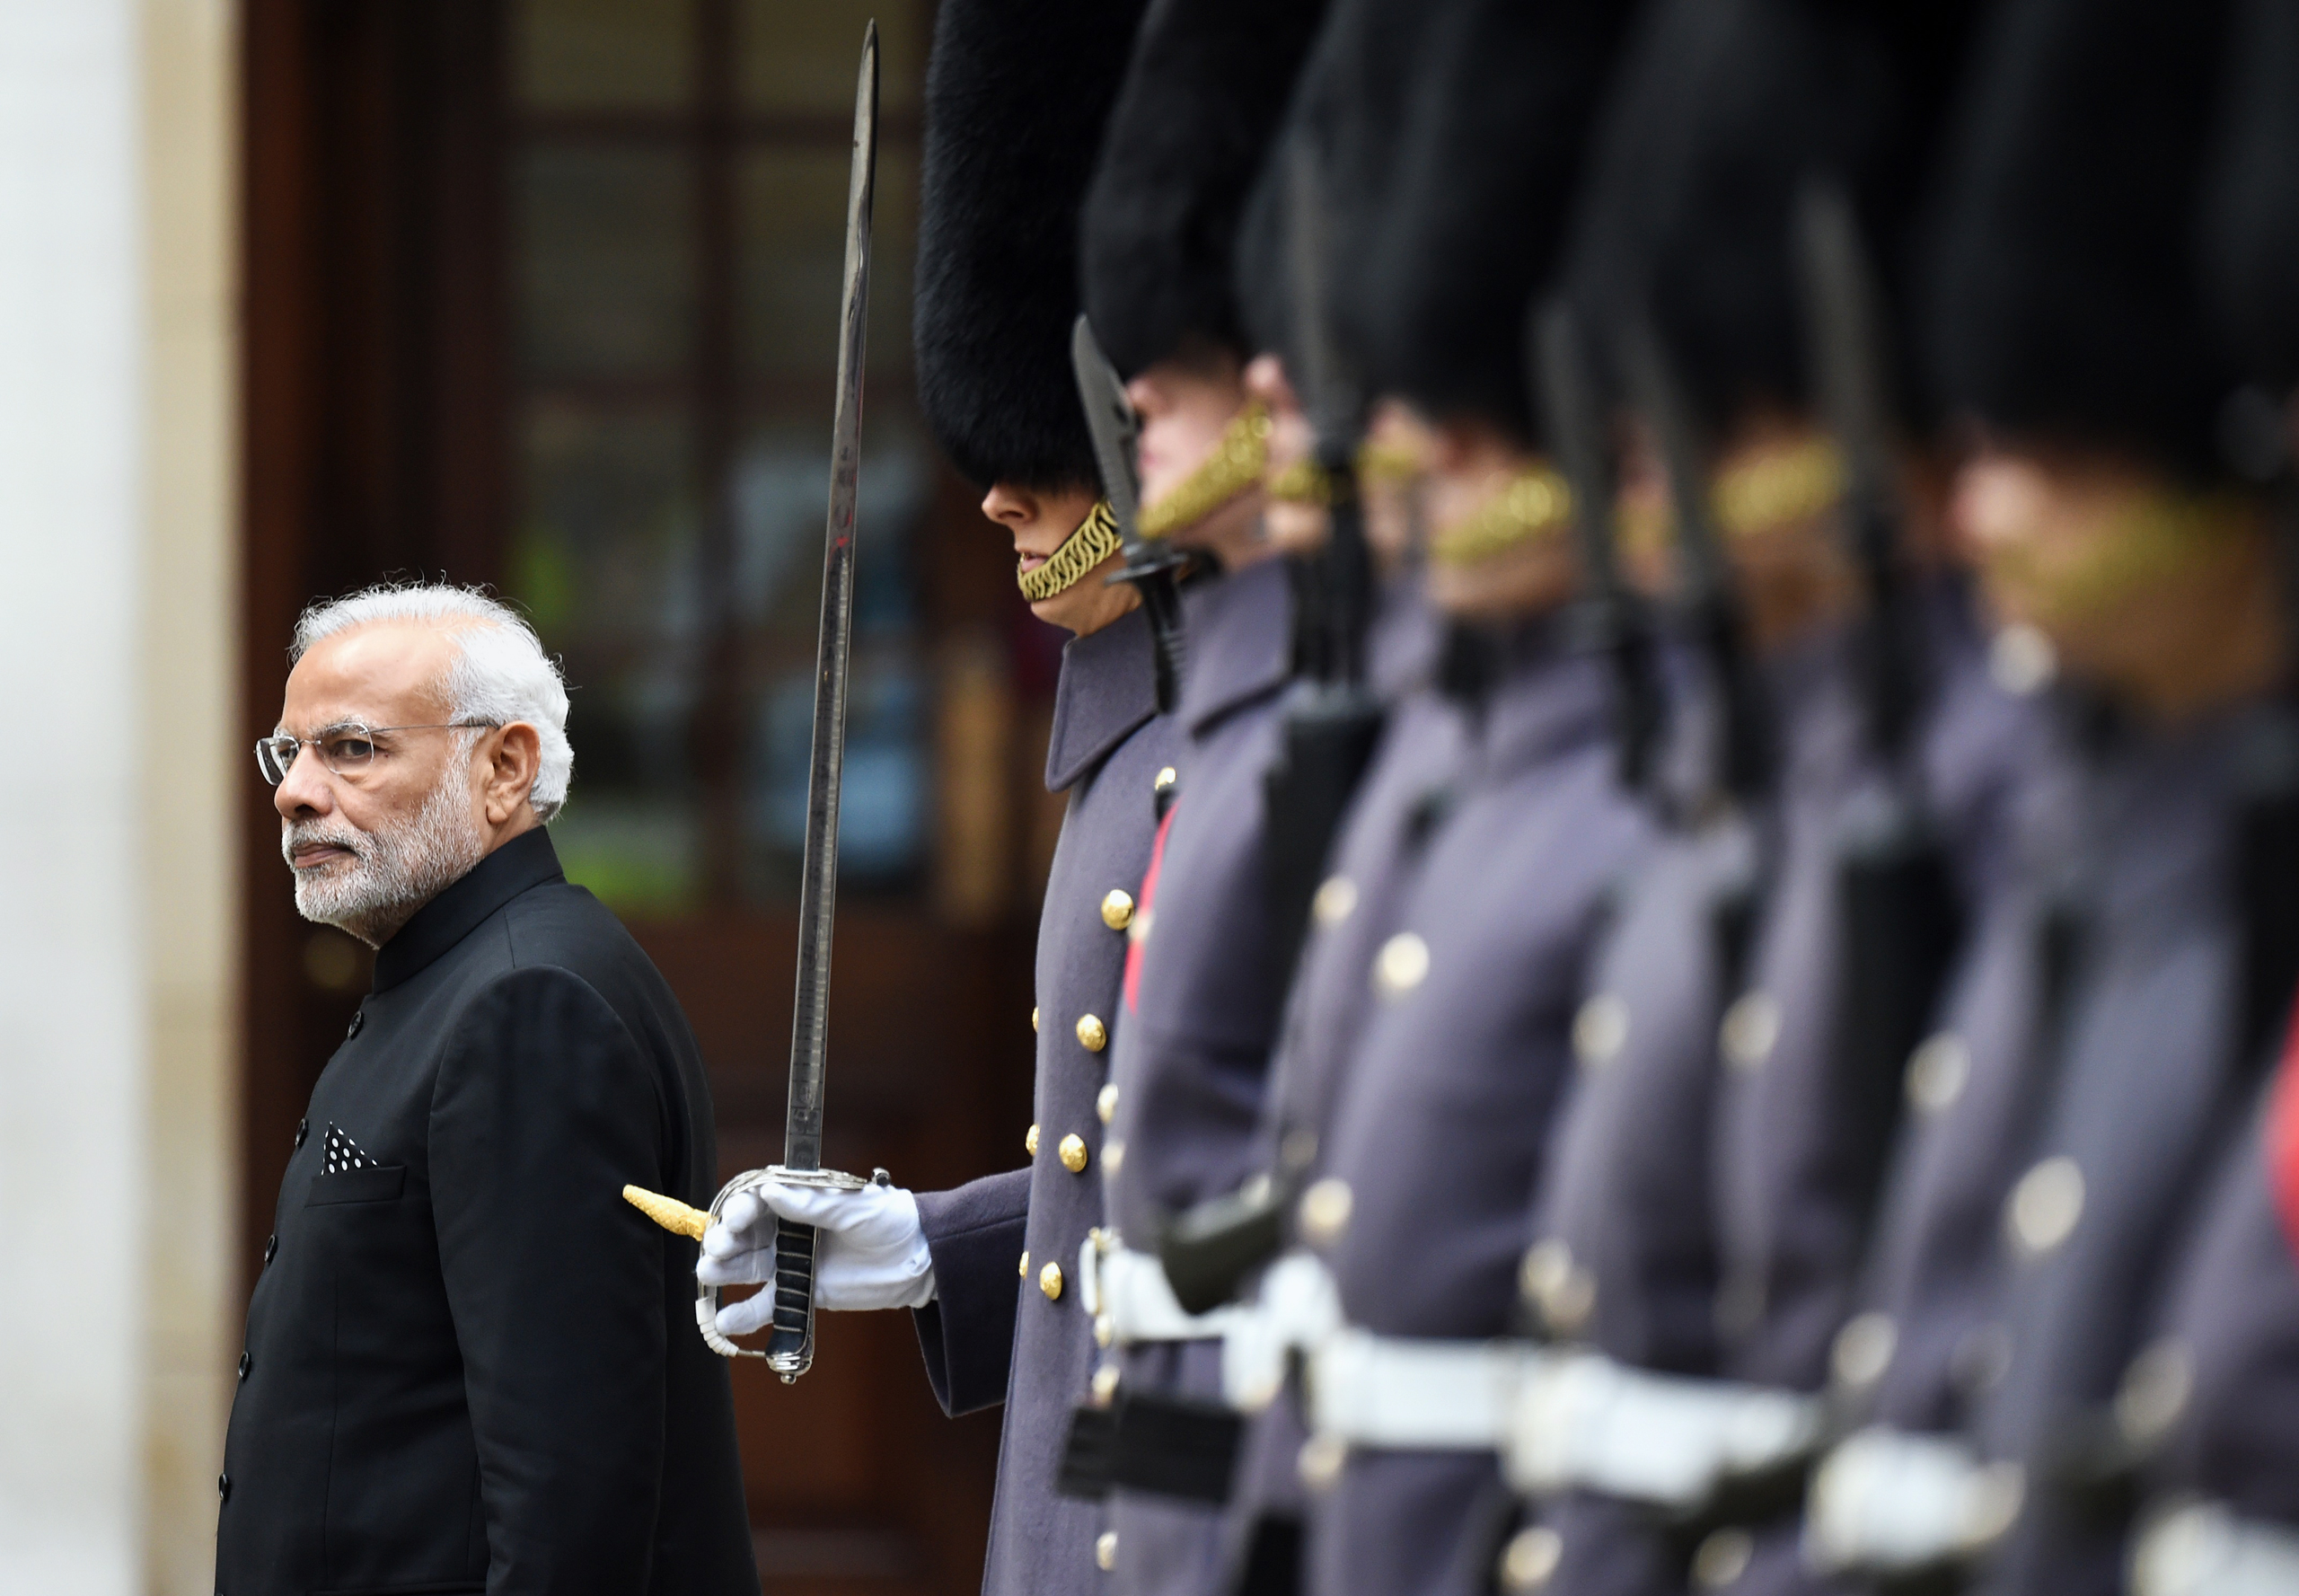 Modi inspects a Guard of Honor in London on Nov.12, one of his more than 30 foreign trips so far